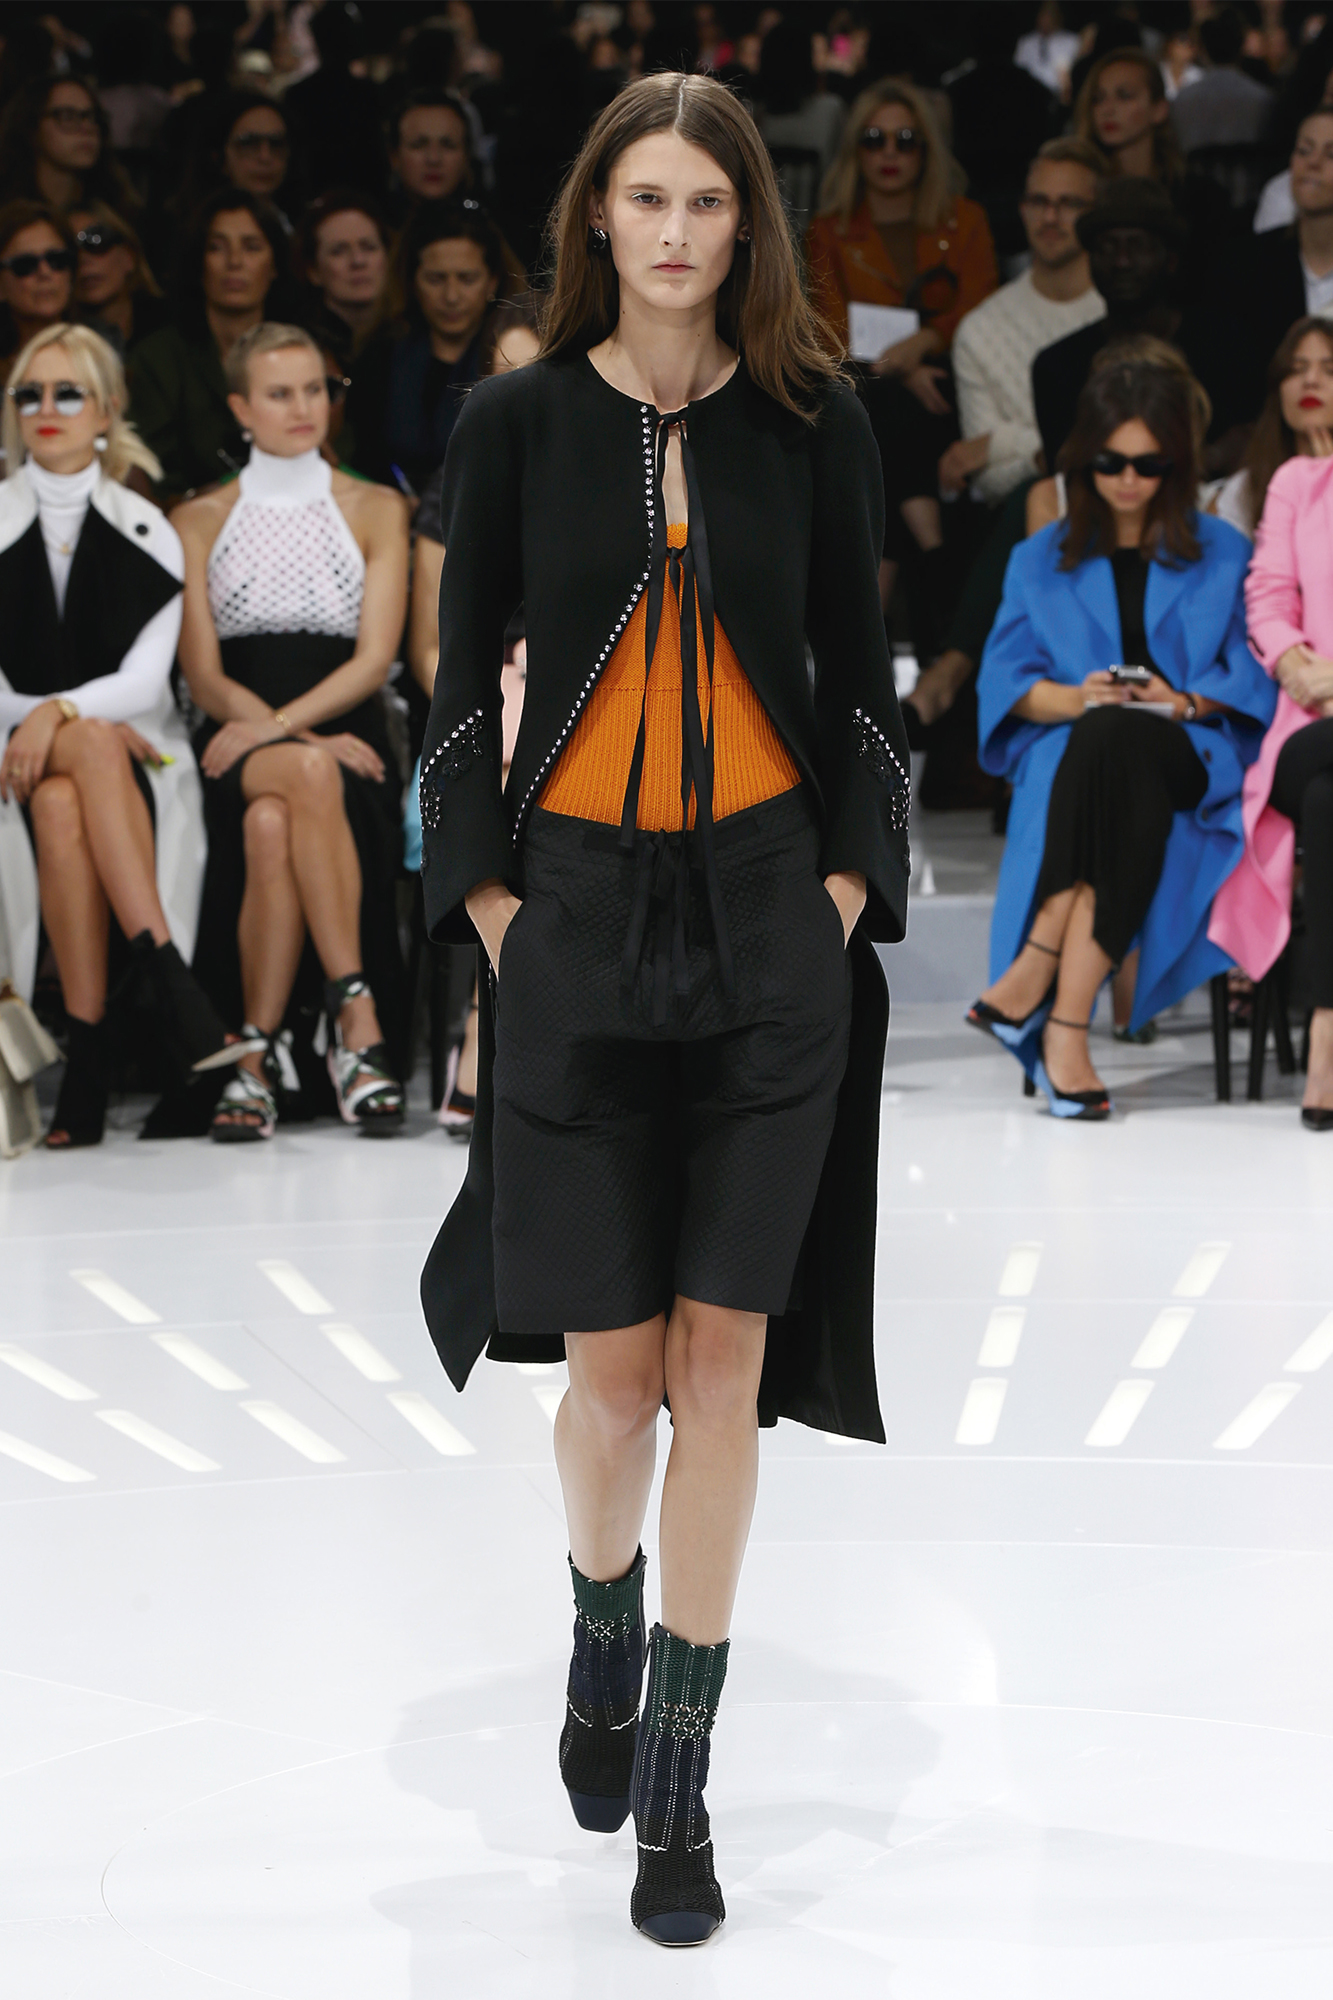 New Western Fashion Christian Dior Ready To Wear Dresses Spring Summer Collection 2015 (29)